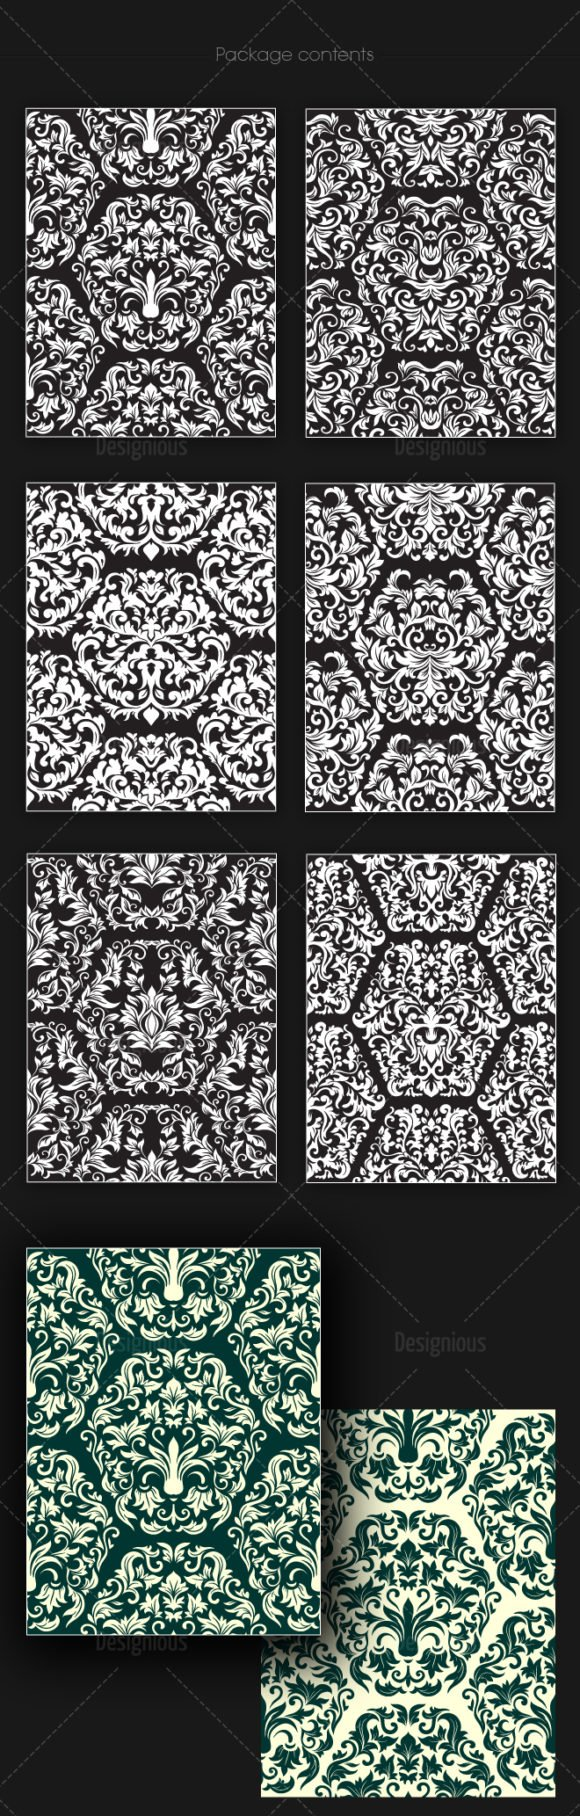 Seamless Patterns Vector Pack 151 2